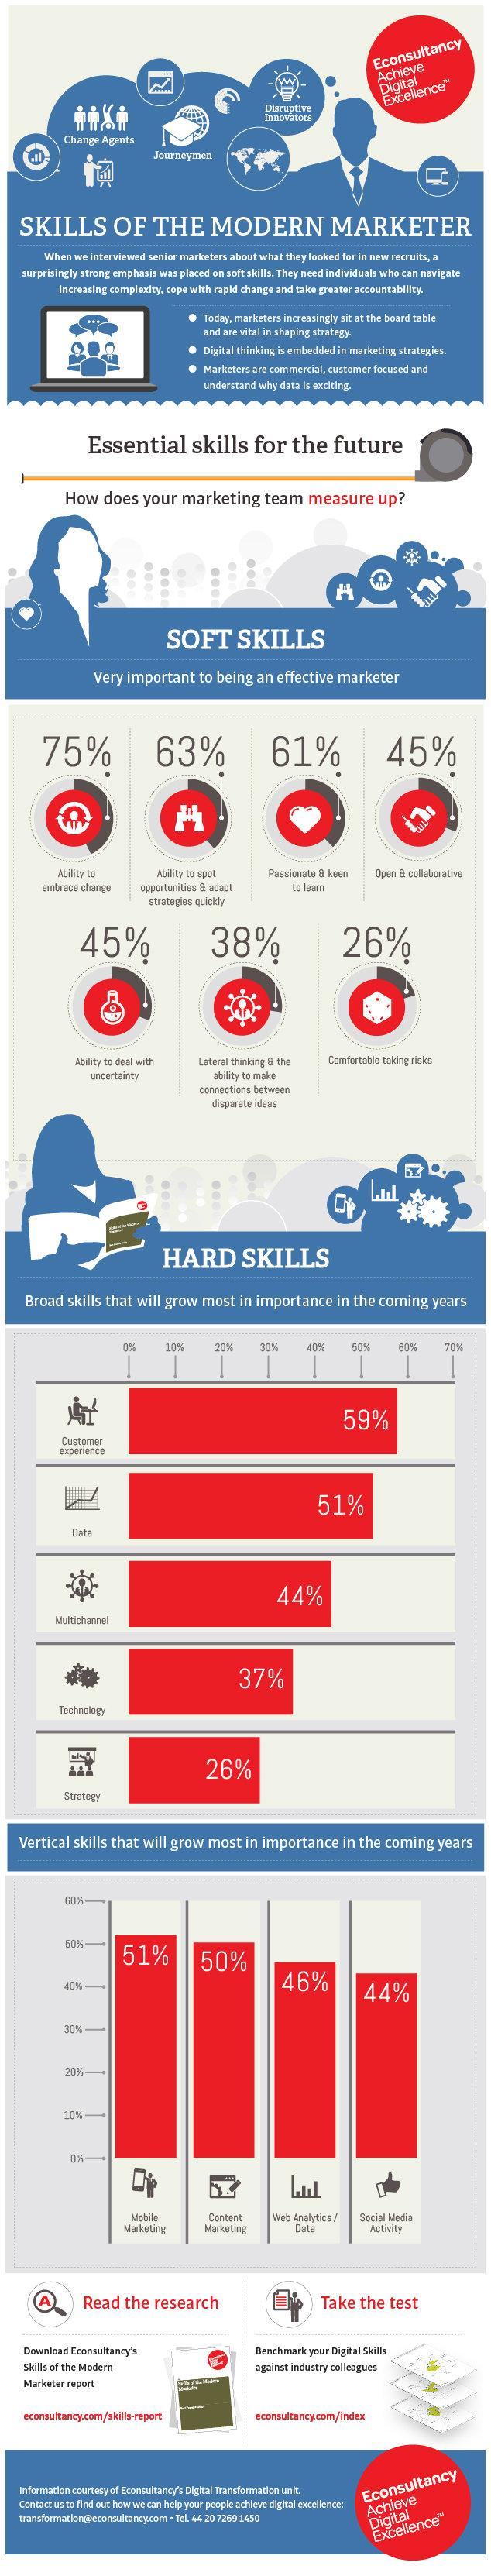 What are the essential skills for modern marketers? #SMM #Infographic